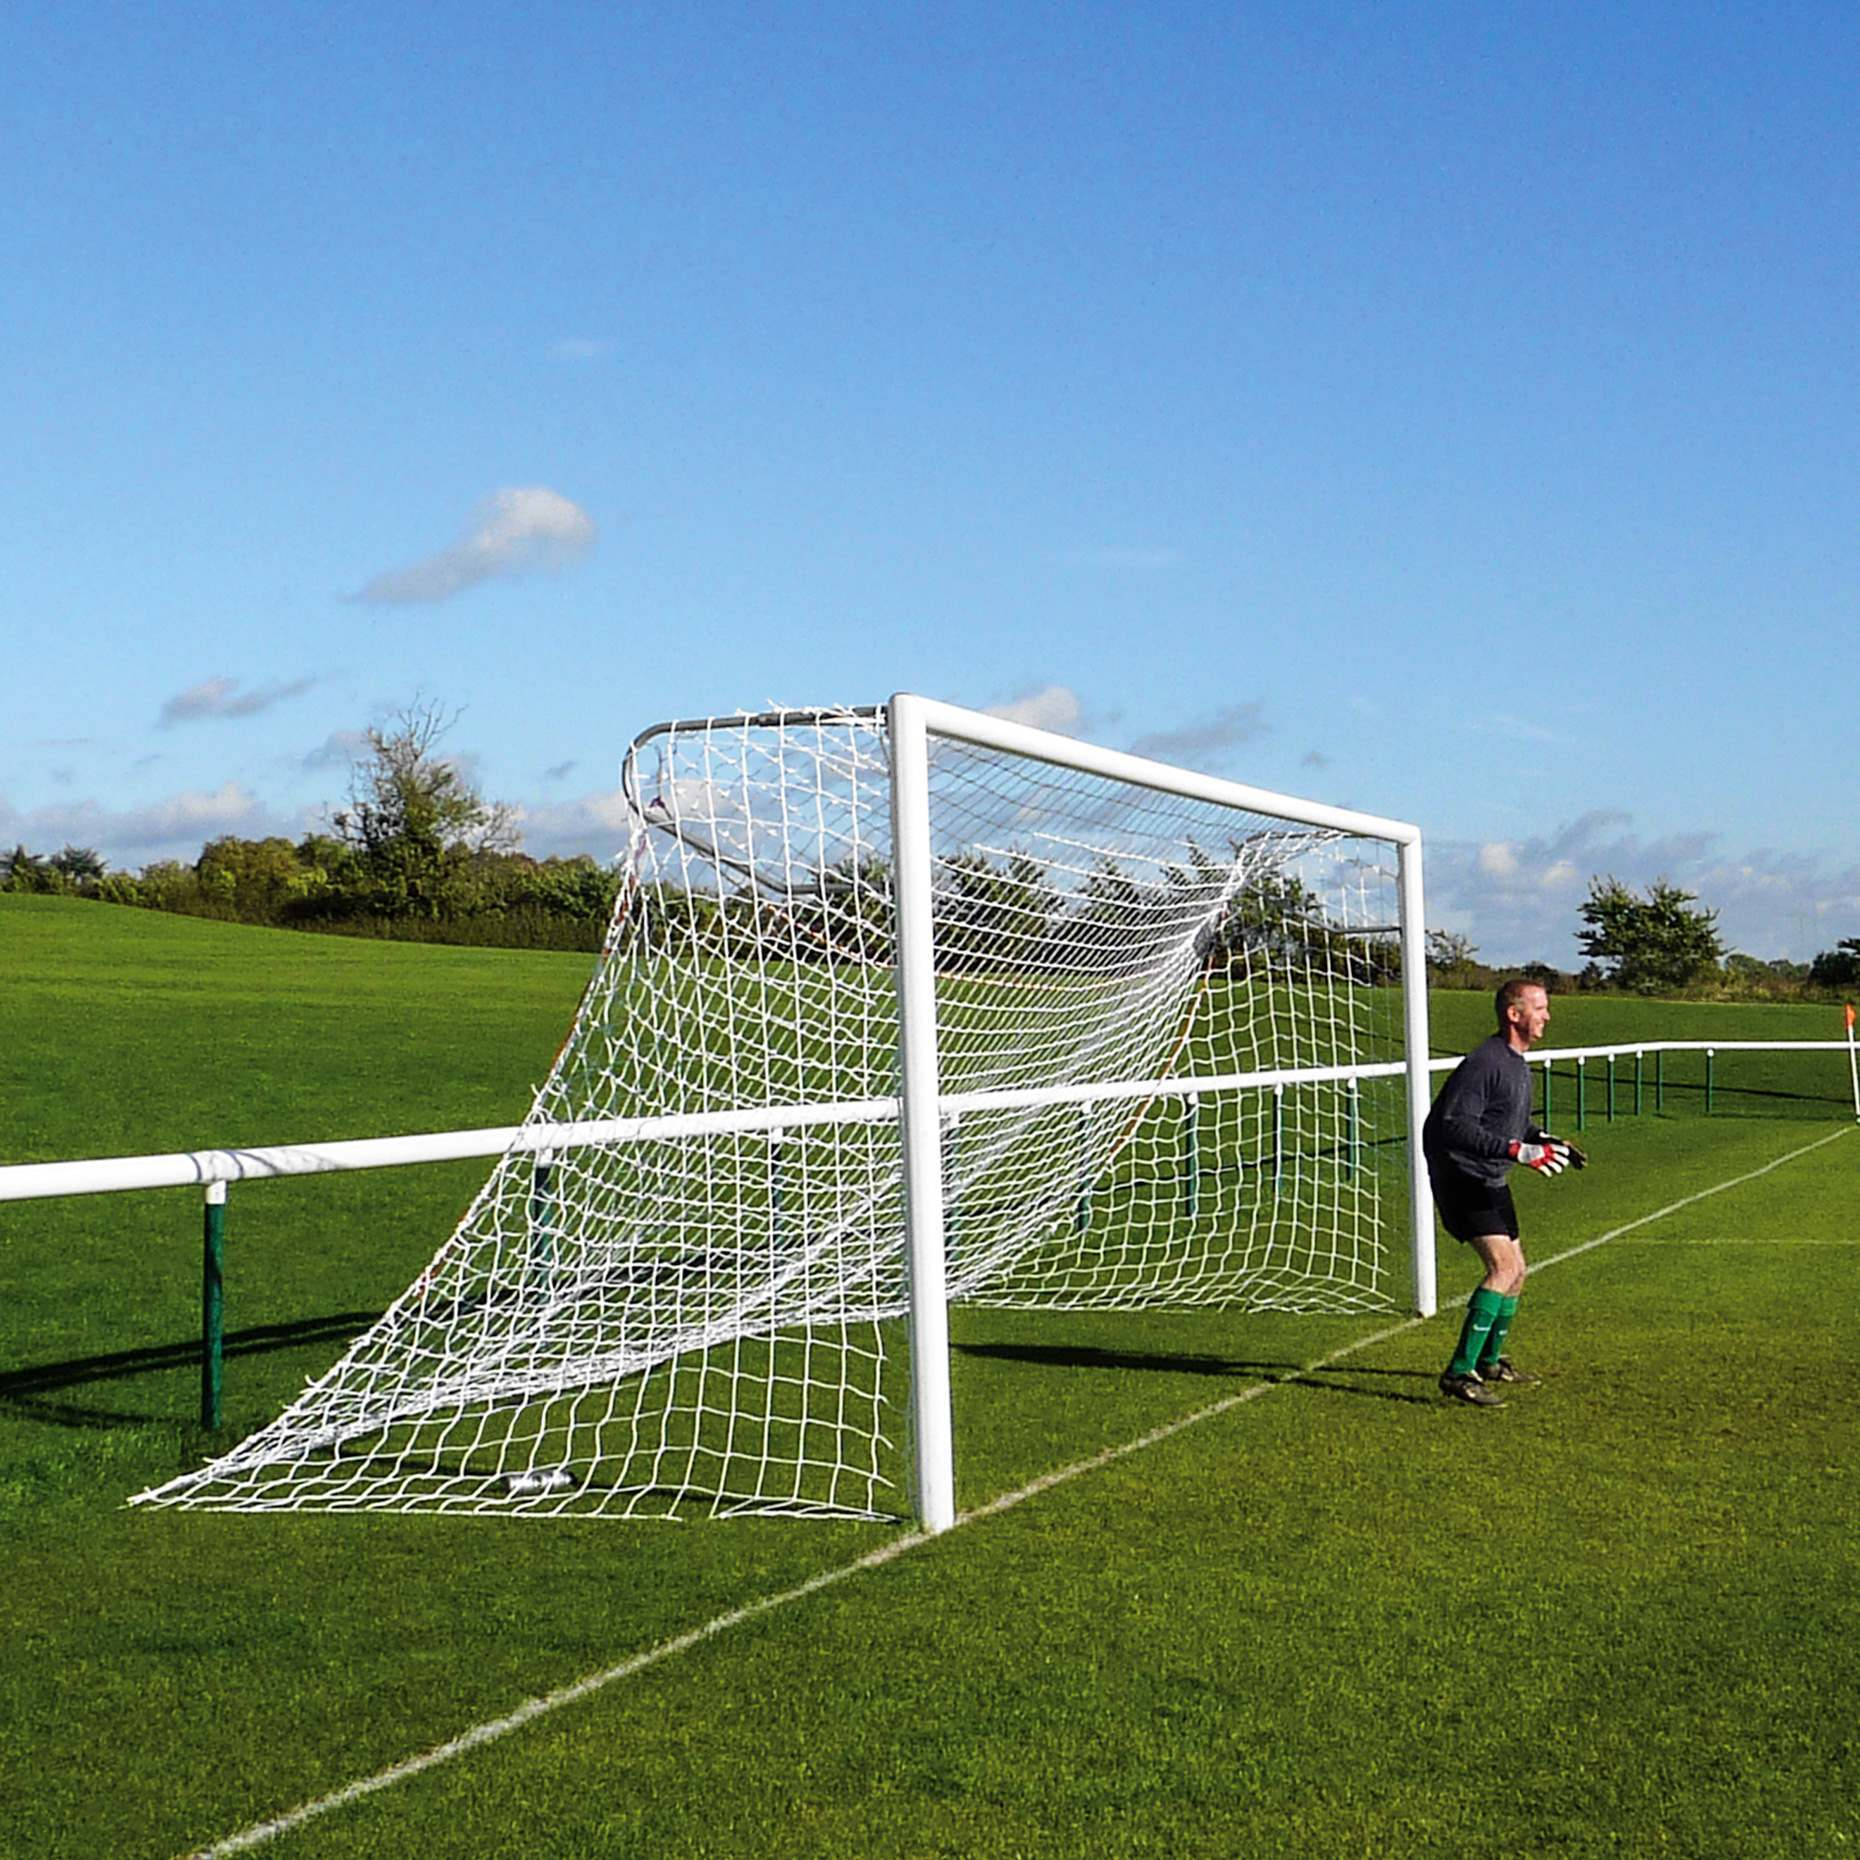 Best Backyard Soccer Goals : 24 x 8 [3mm] Soccer Goal Nets Senior Full Size  Net World Sports